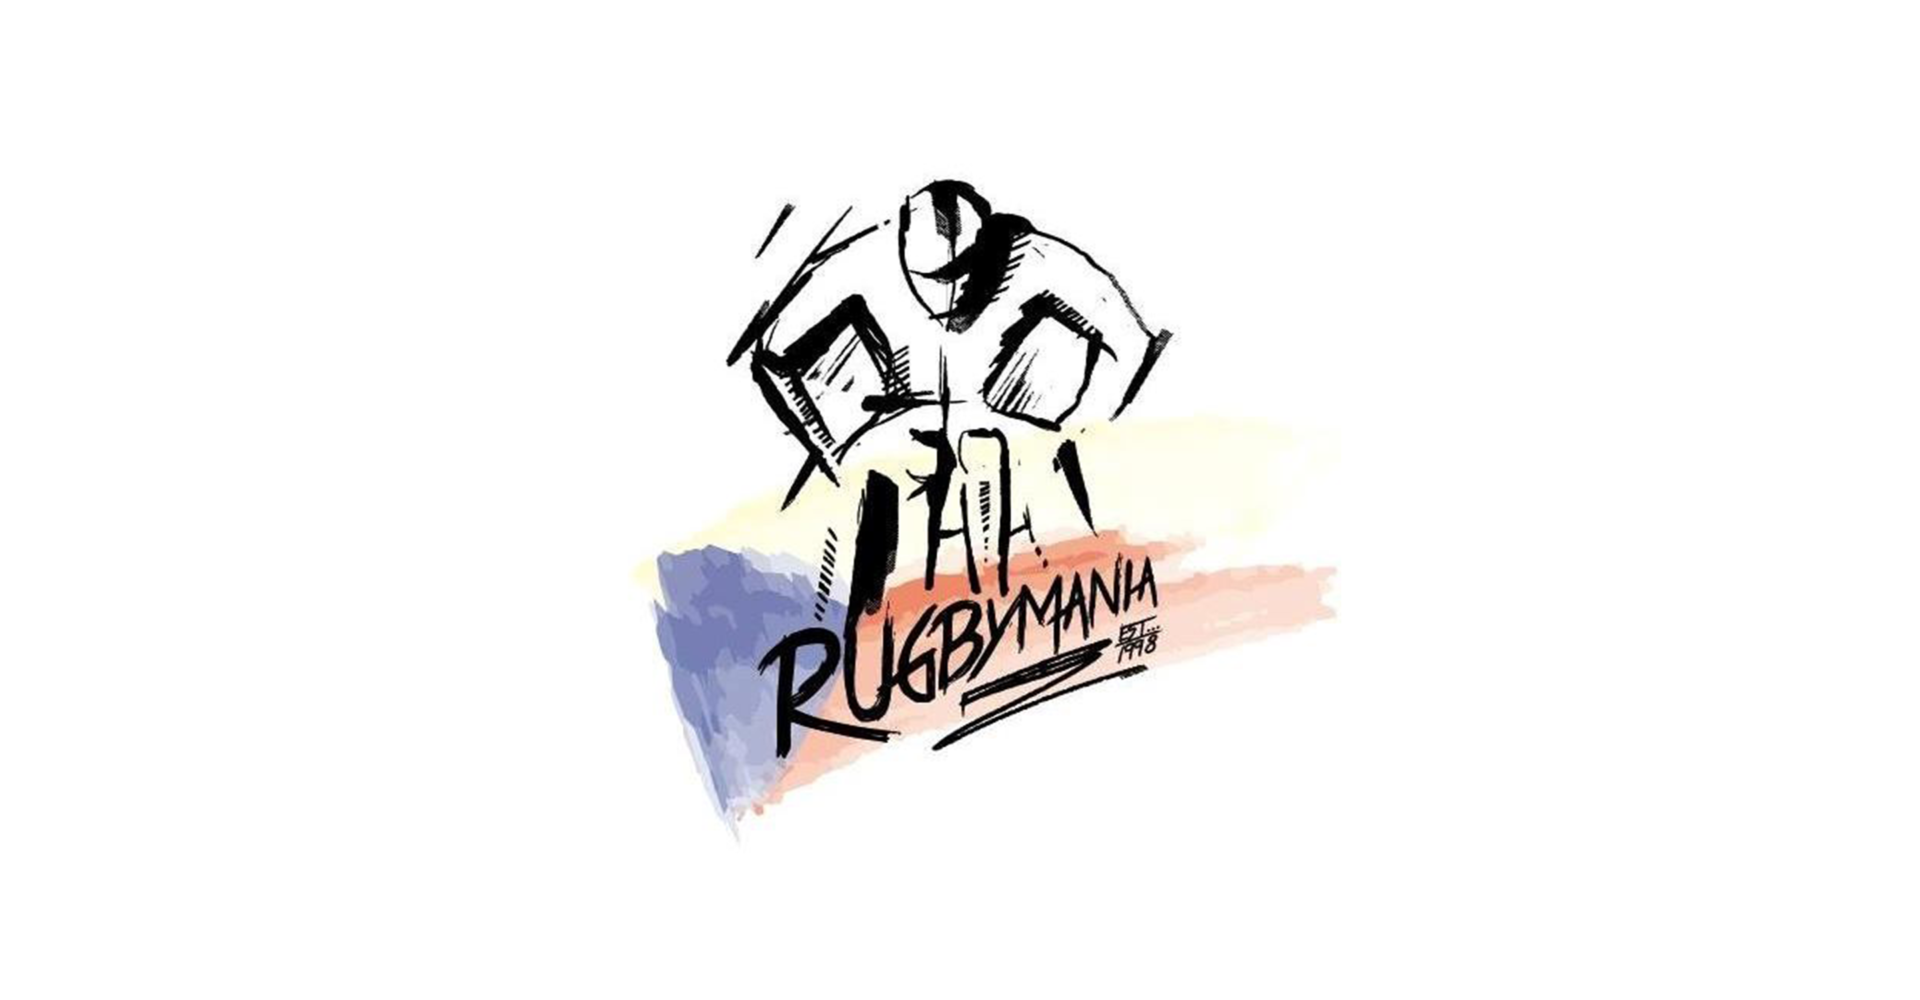 Canada set to compete at Rugbymania 2019